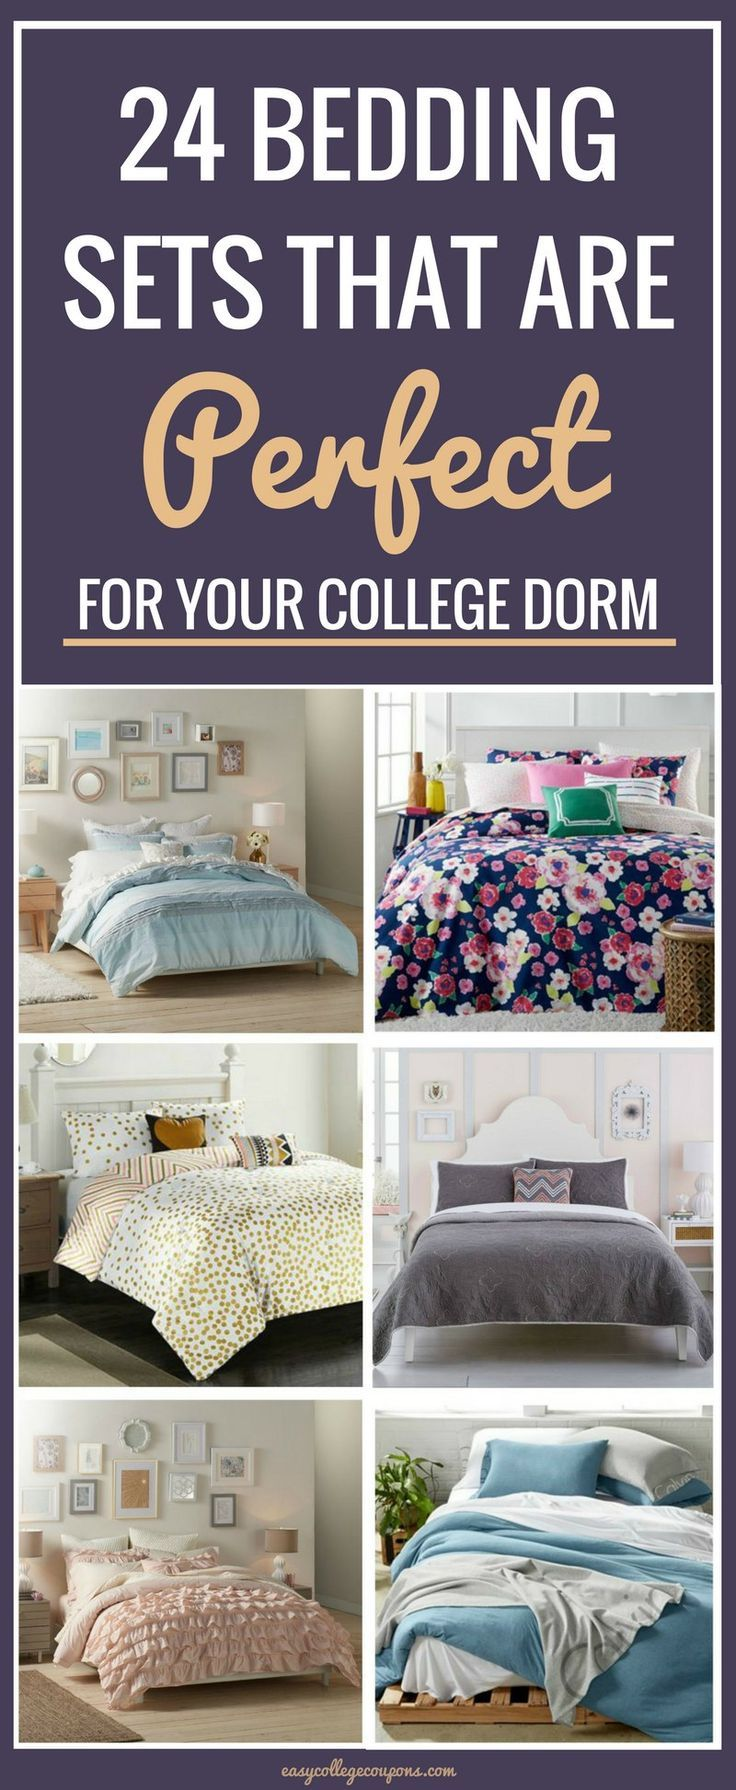 college student christmas gift ideas Ideas christmas gifts college student - if you are looking for the best christmas gifts, then visit our site we have something for everyone, search and order today.